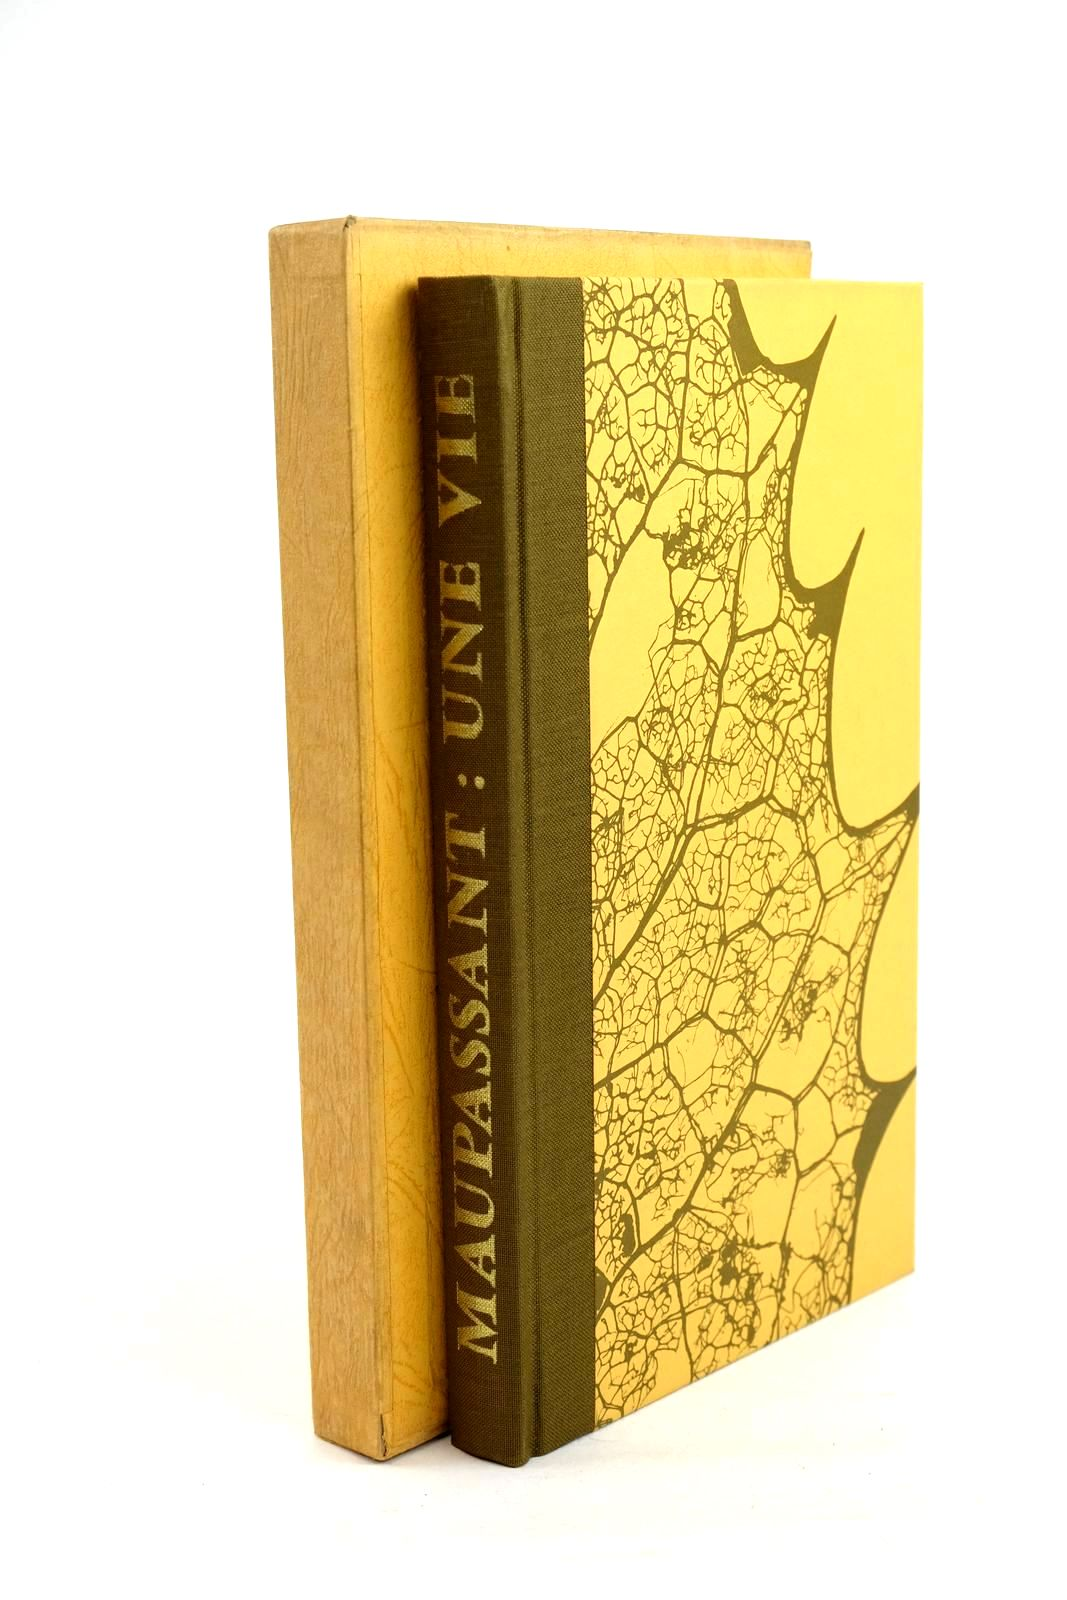 Photo of UNE VIE written by De Maupassant, Guy illustrated by Acs, Laszlo published by Folio Society (STOCK CODE: 1320400)  for sale by Stella & Rose's Books